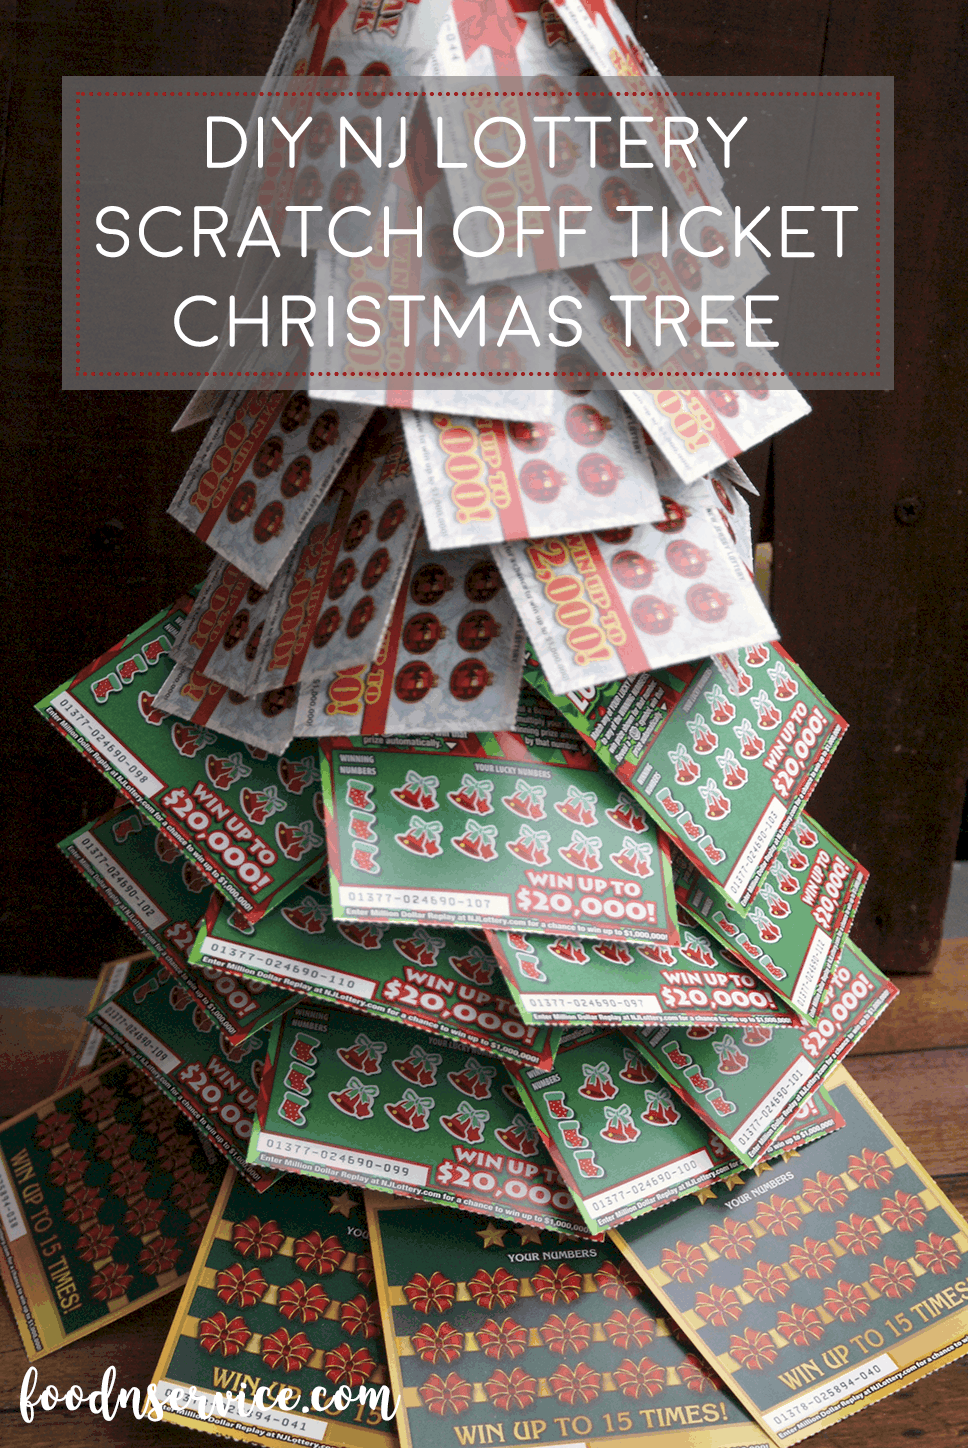 DIY NJ Lottery Ticket Scratch Off Christmas Tree